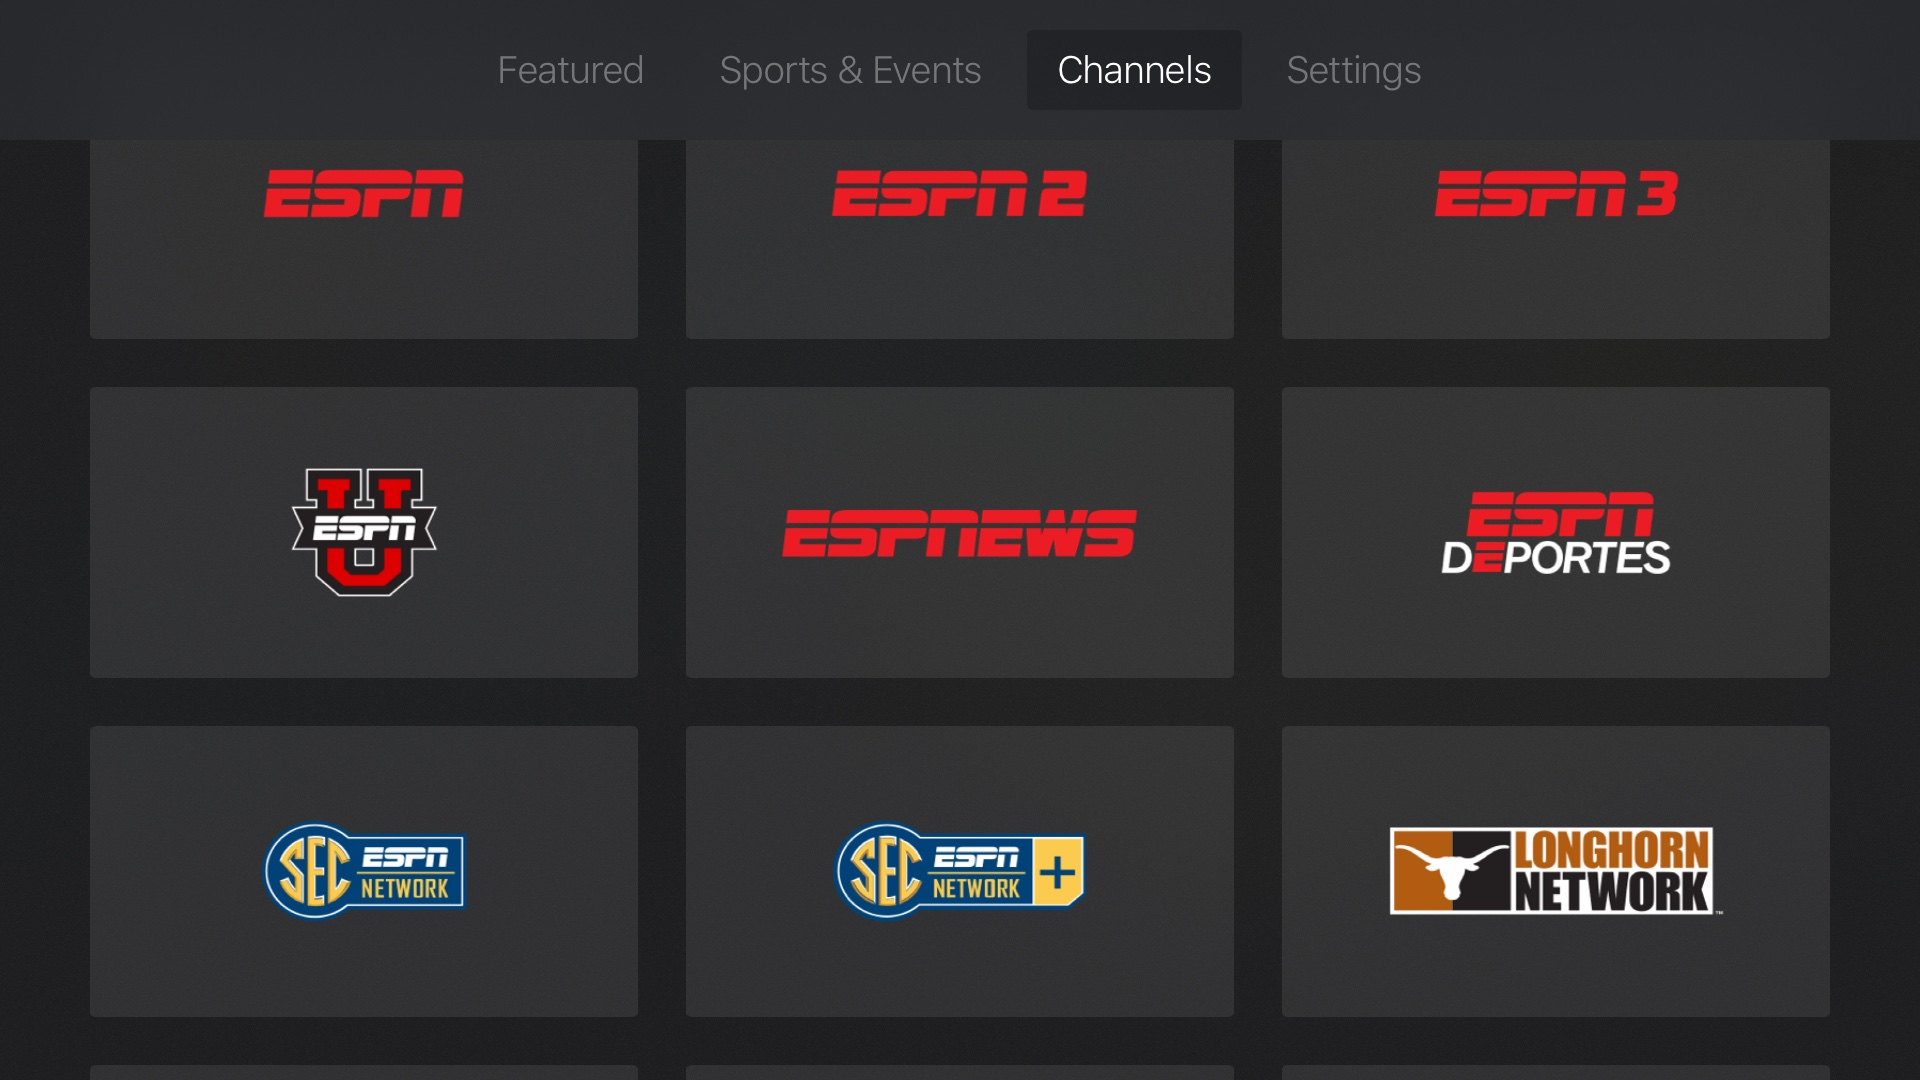 Espn Tv App For Iphone